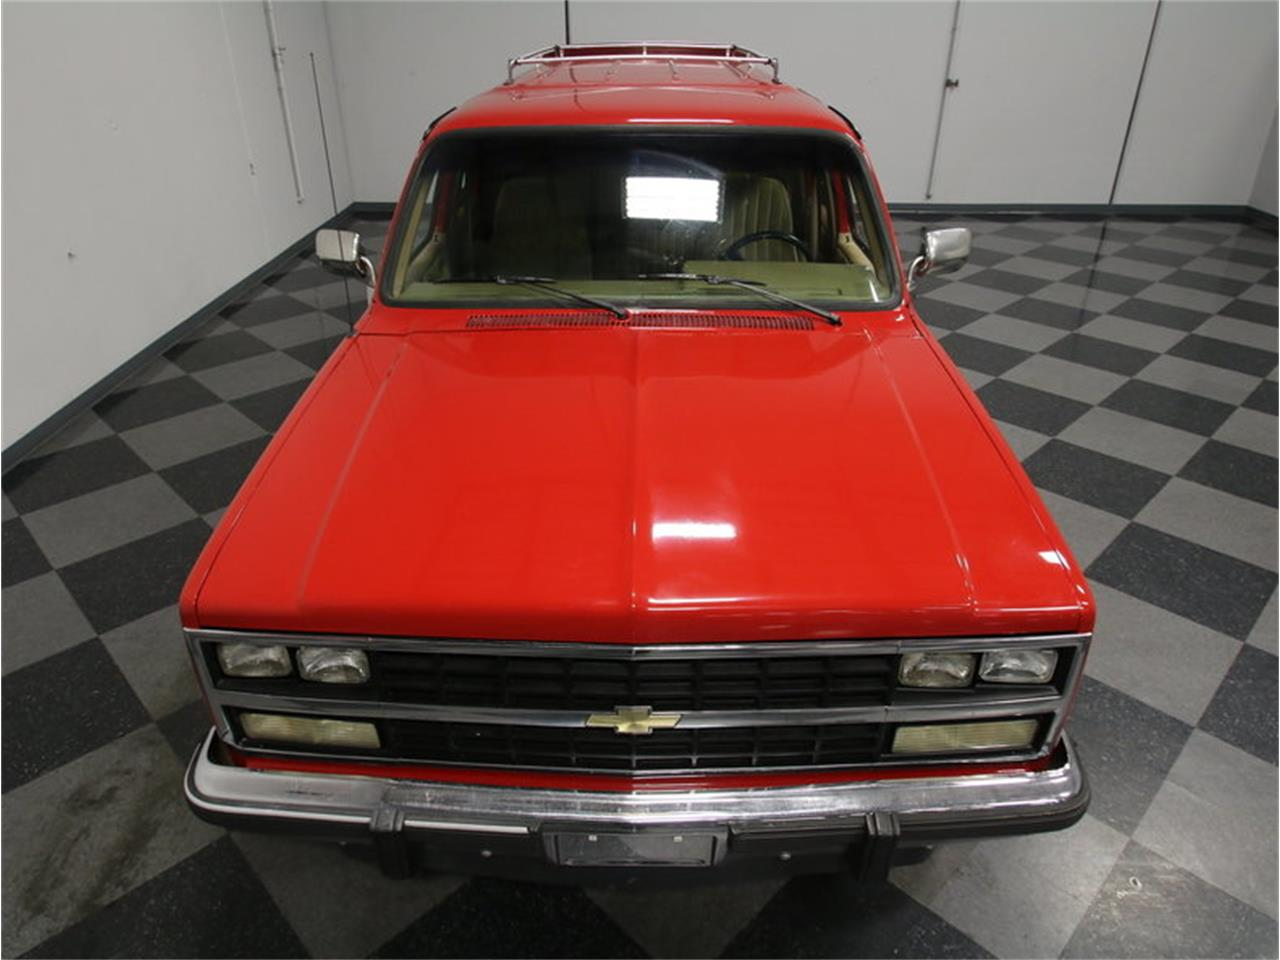 Large Picture of '85 Chevrolet Suburban located in Georgia - $11,995.00 Offered by Streetside Classics - Atlanta - KIU1